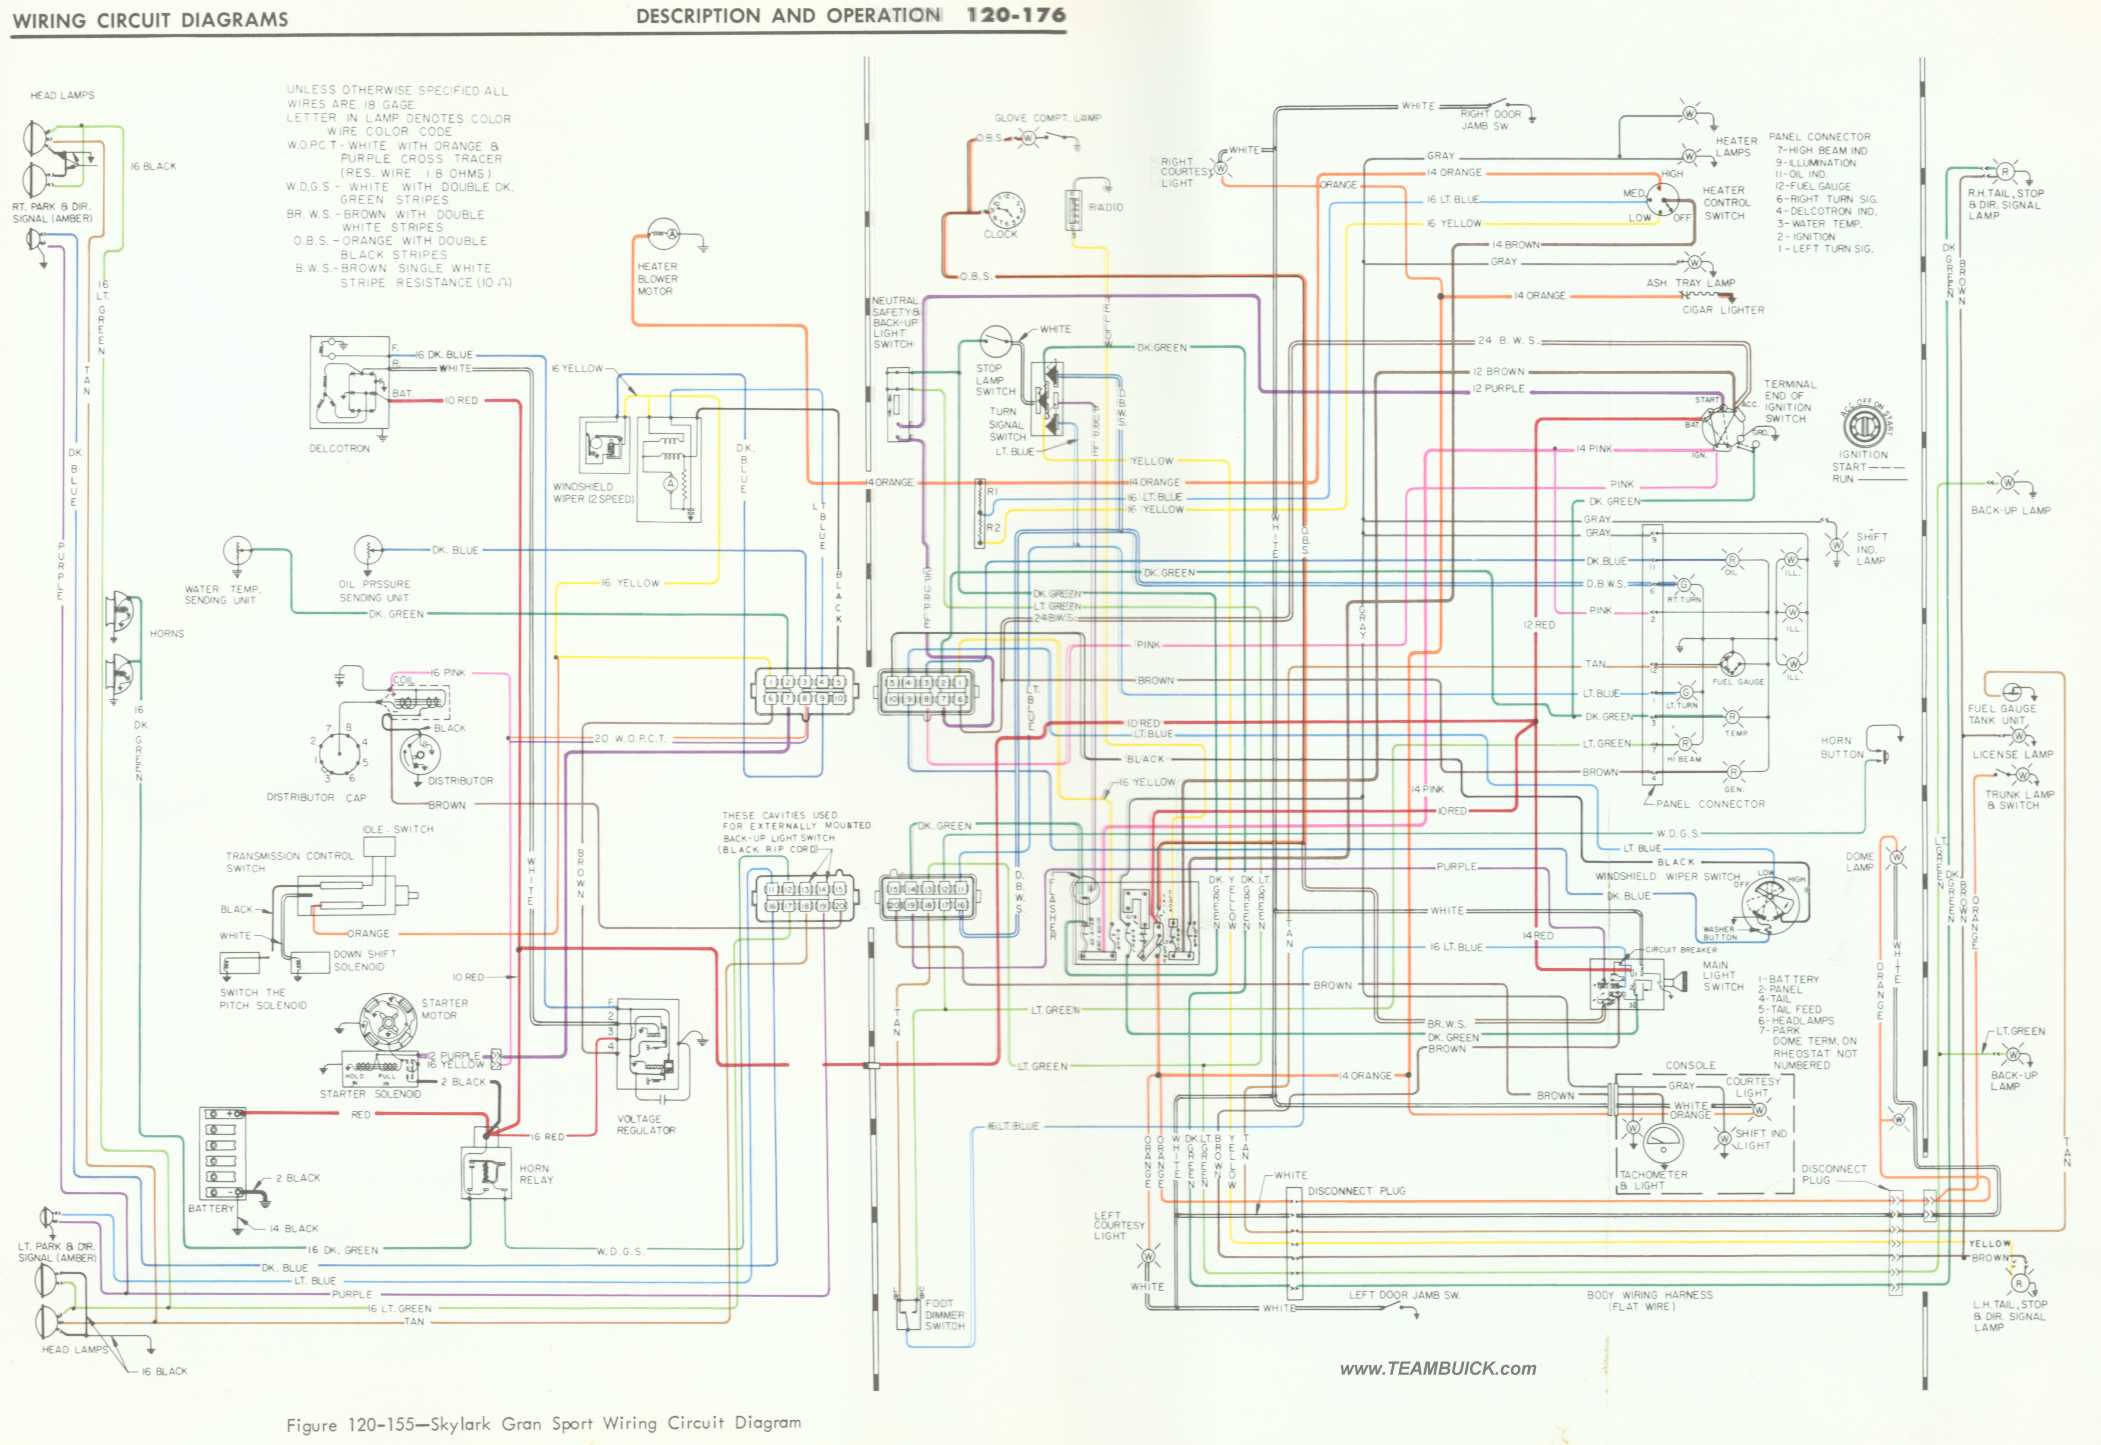 1966 buick special wiring diagram wiring library rh 36 codingcommunity de 14 Tundra Power Window Circuit Power Window Wiring Diagram